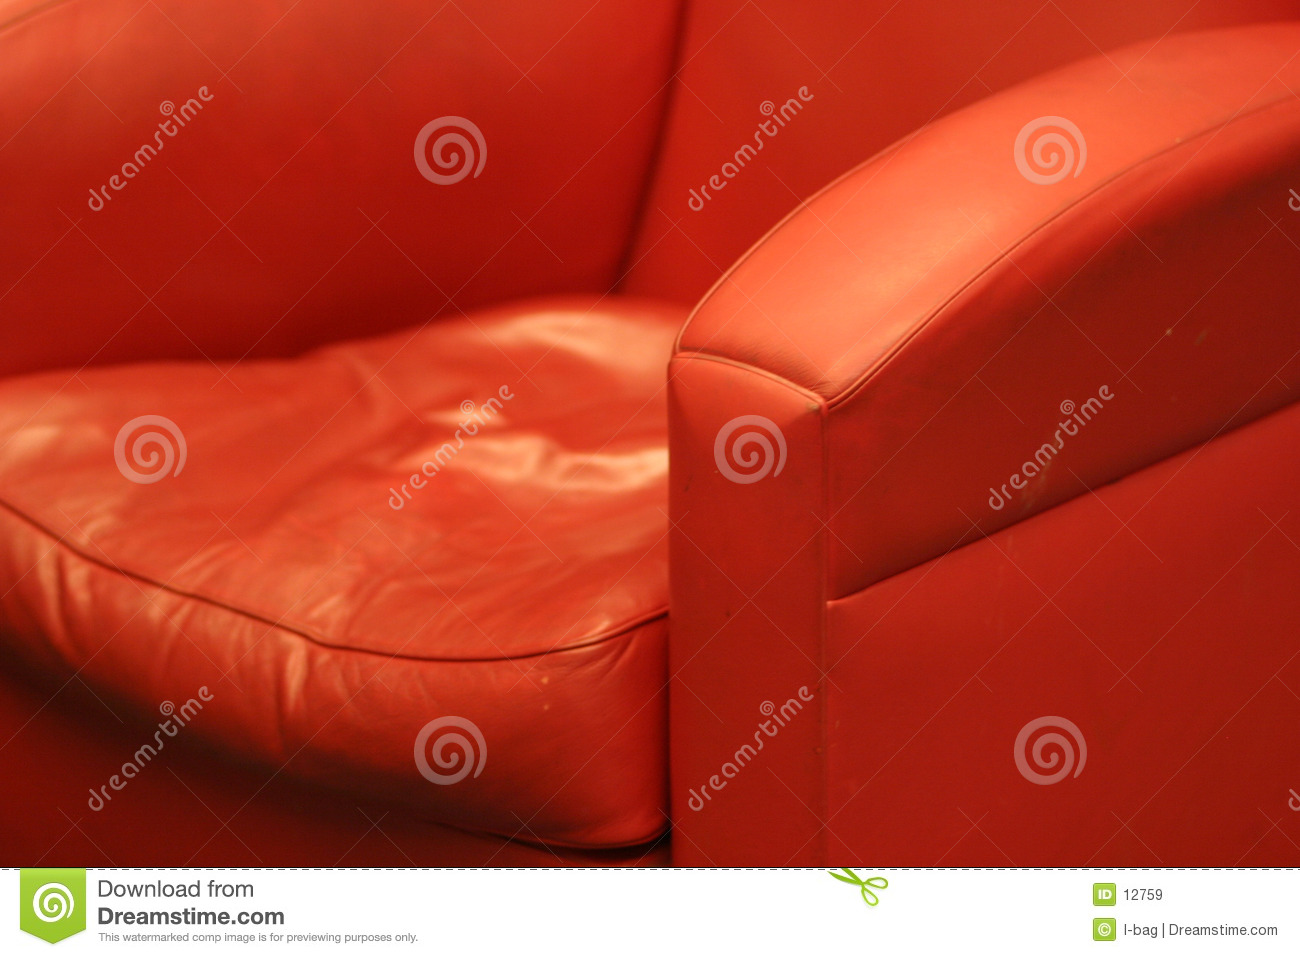 Red comfortable leather chair